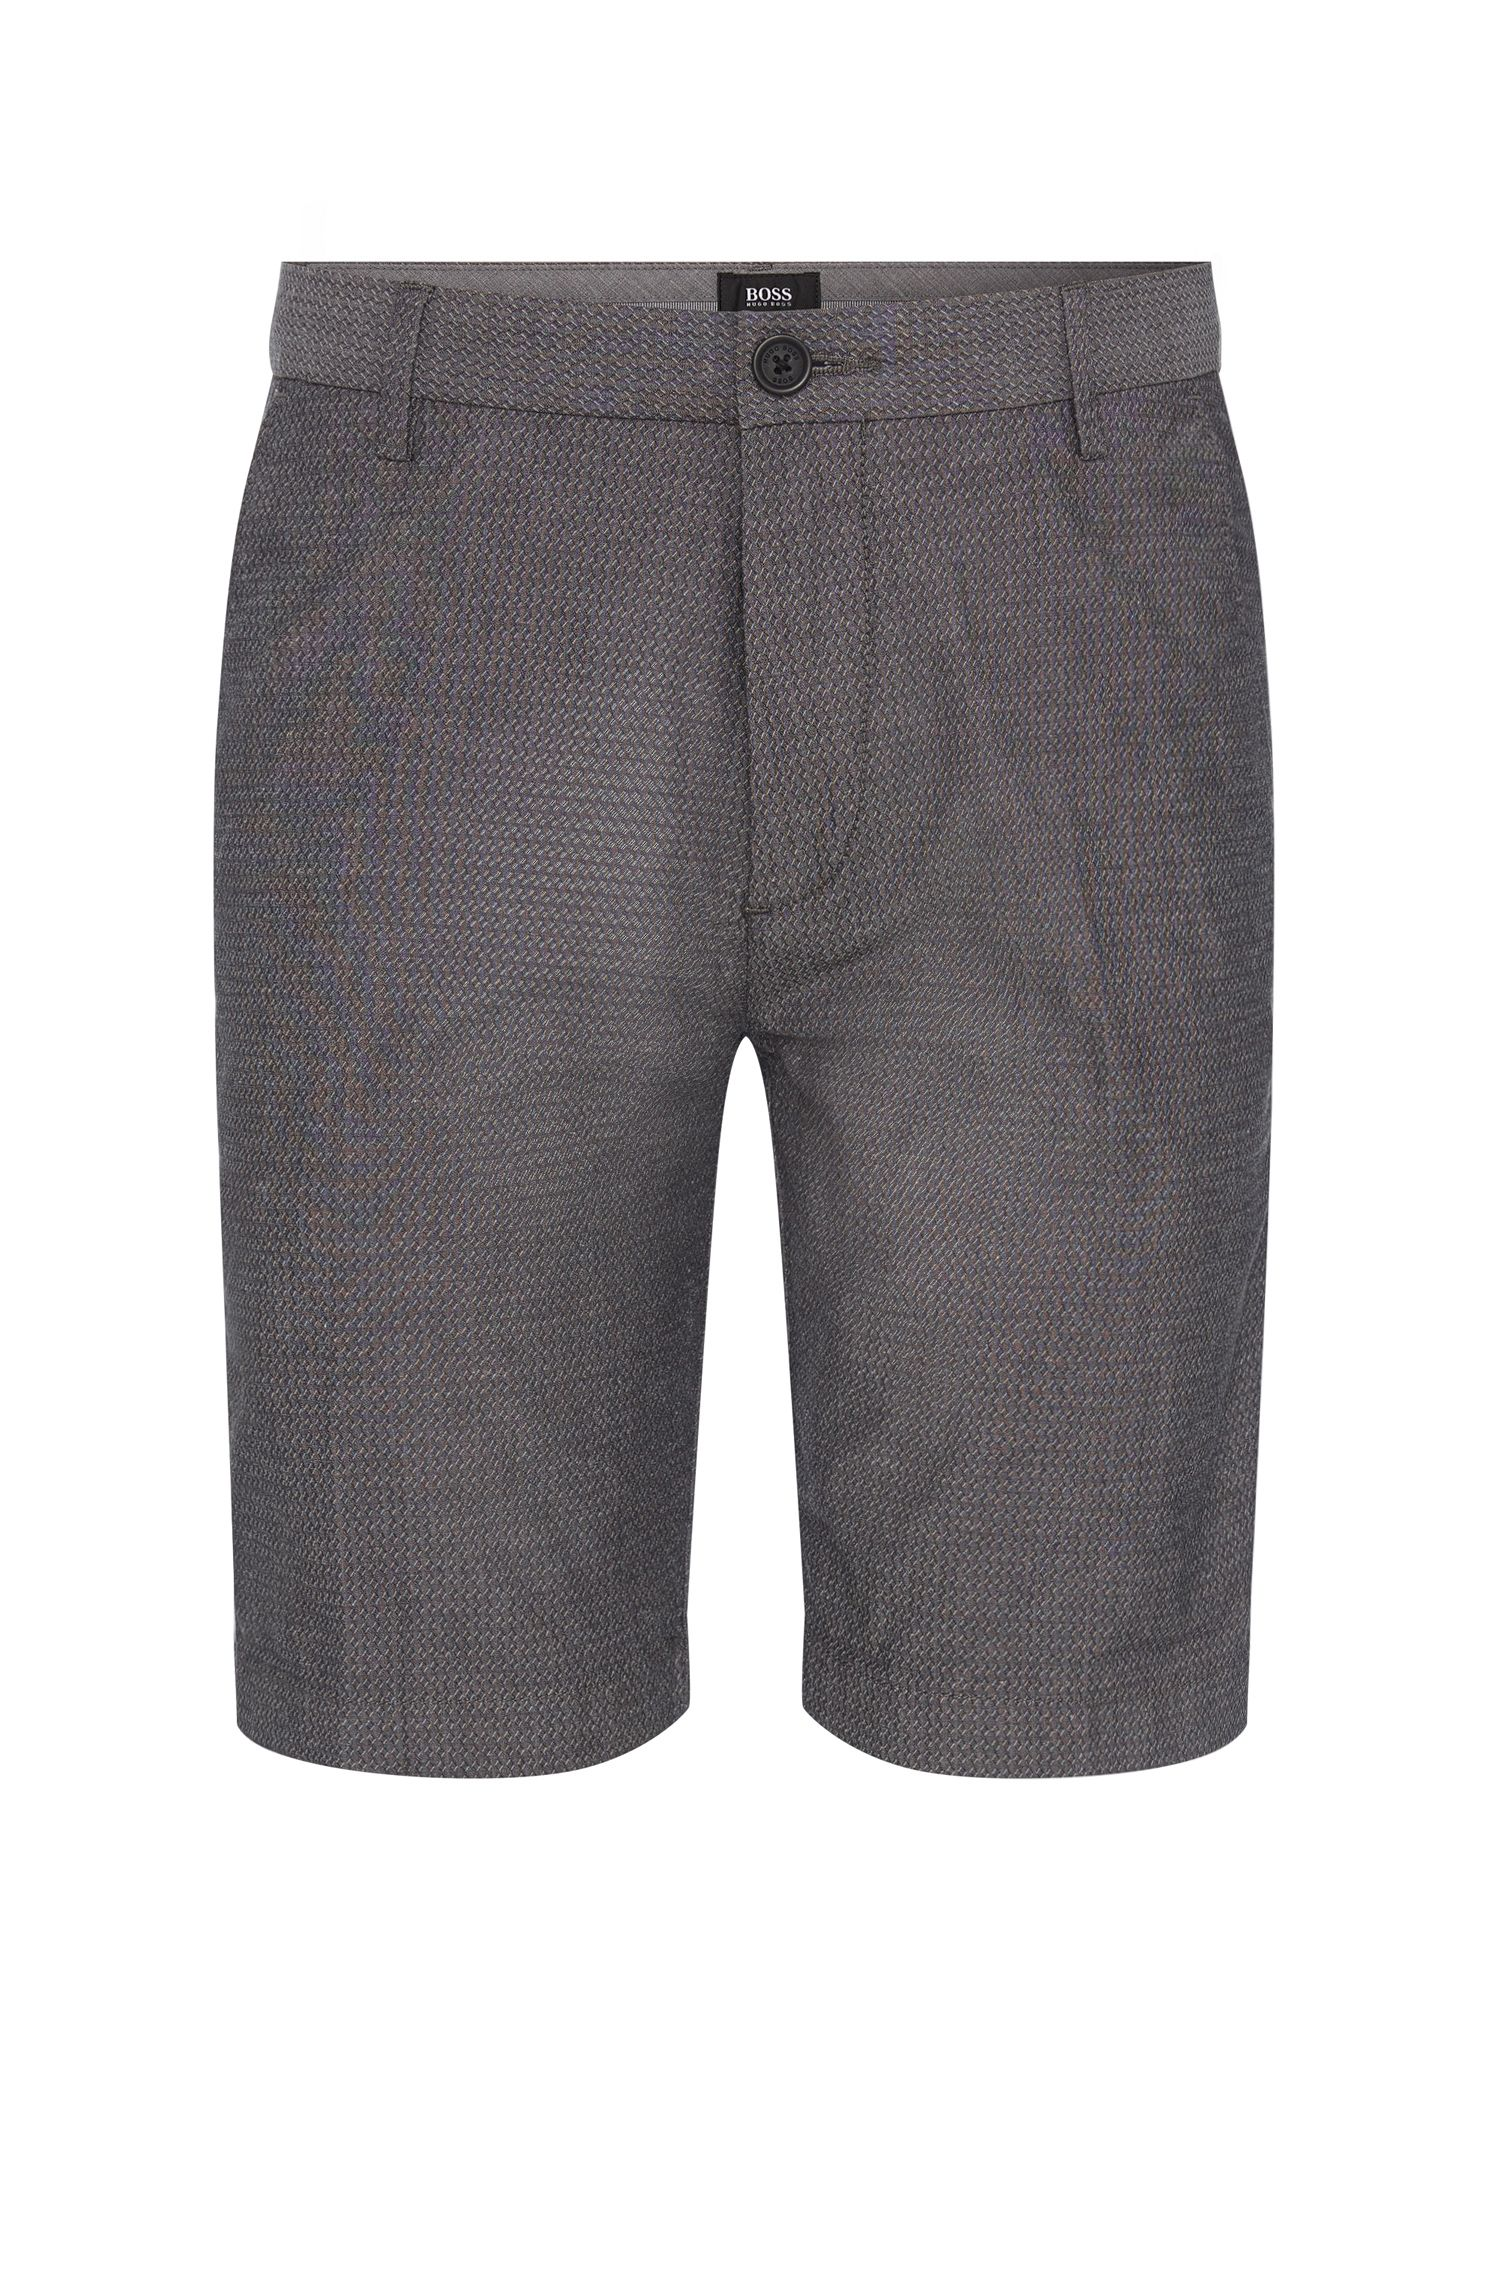 'RiceShort-W' | Slim Fit, Stretch Cotton Jacquard Shorts